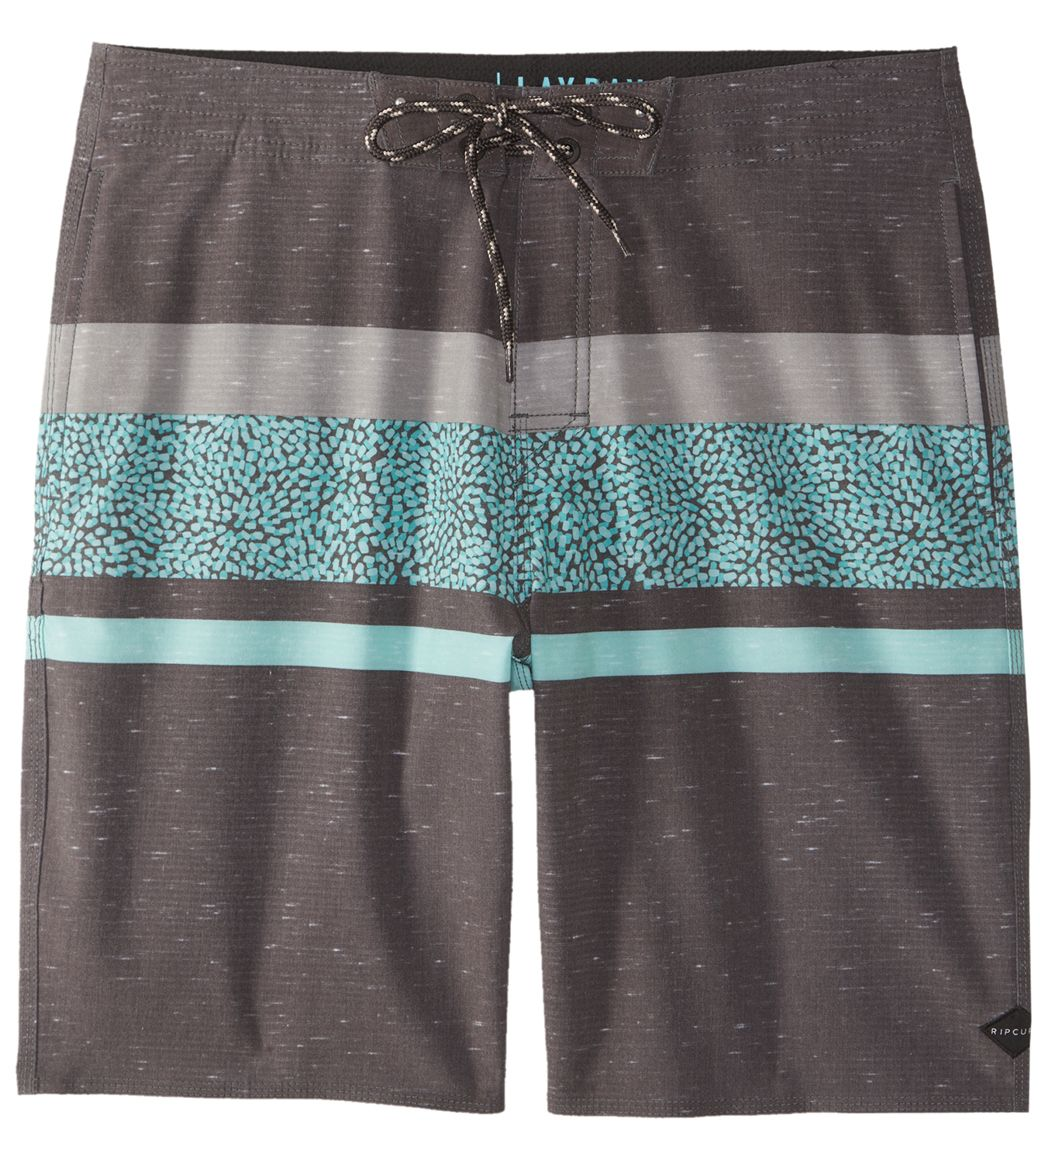 148eb16846 Rip Curl Men's Rapture Fill Layday Boardshort at SwimOutlet.com - Free  Shipping